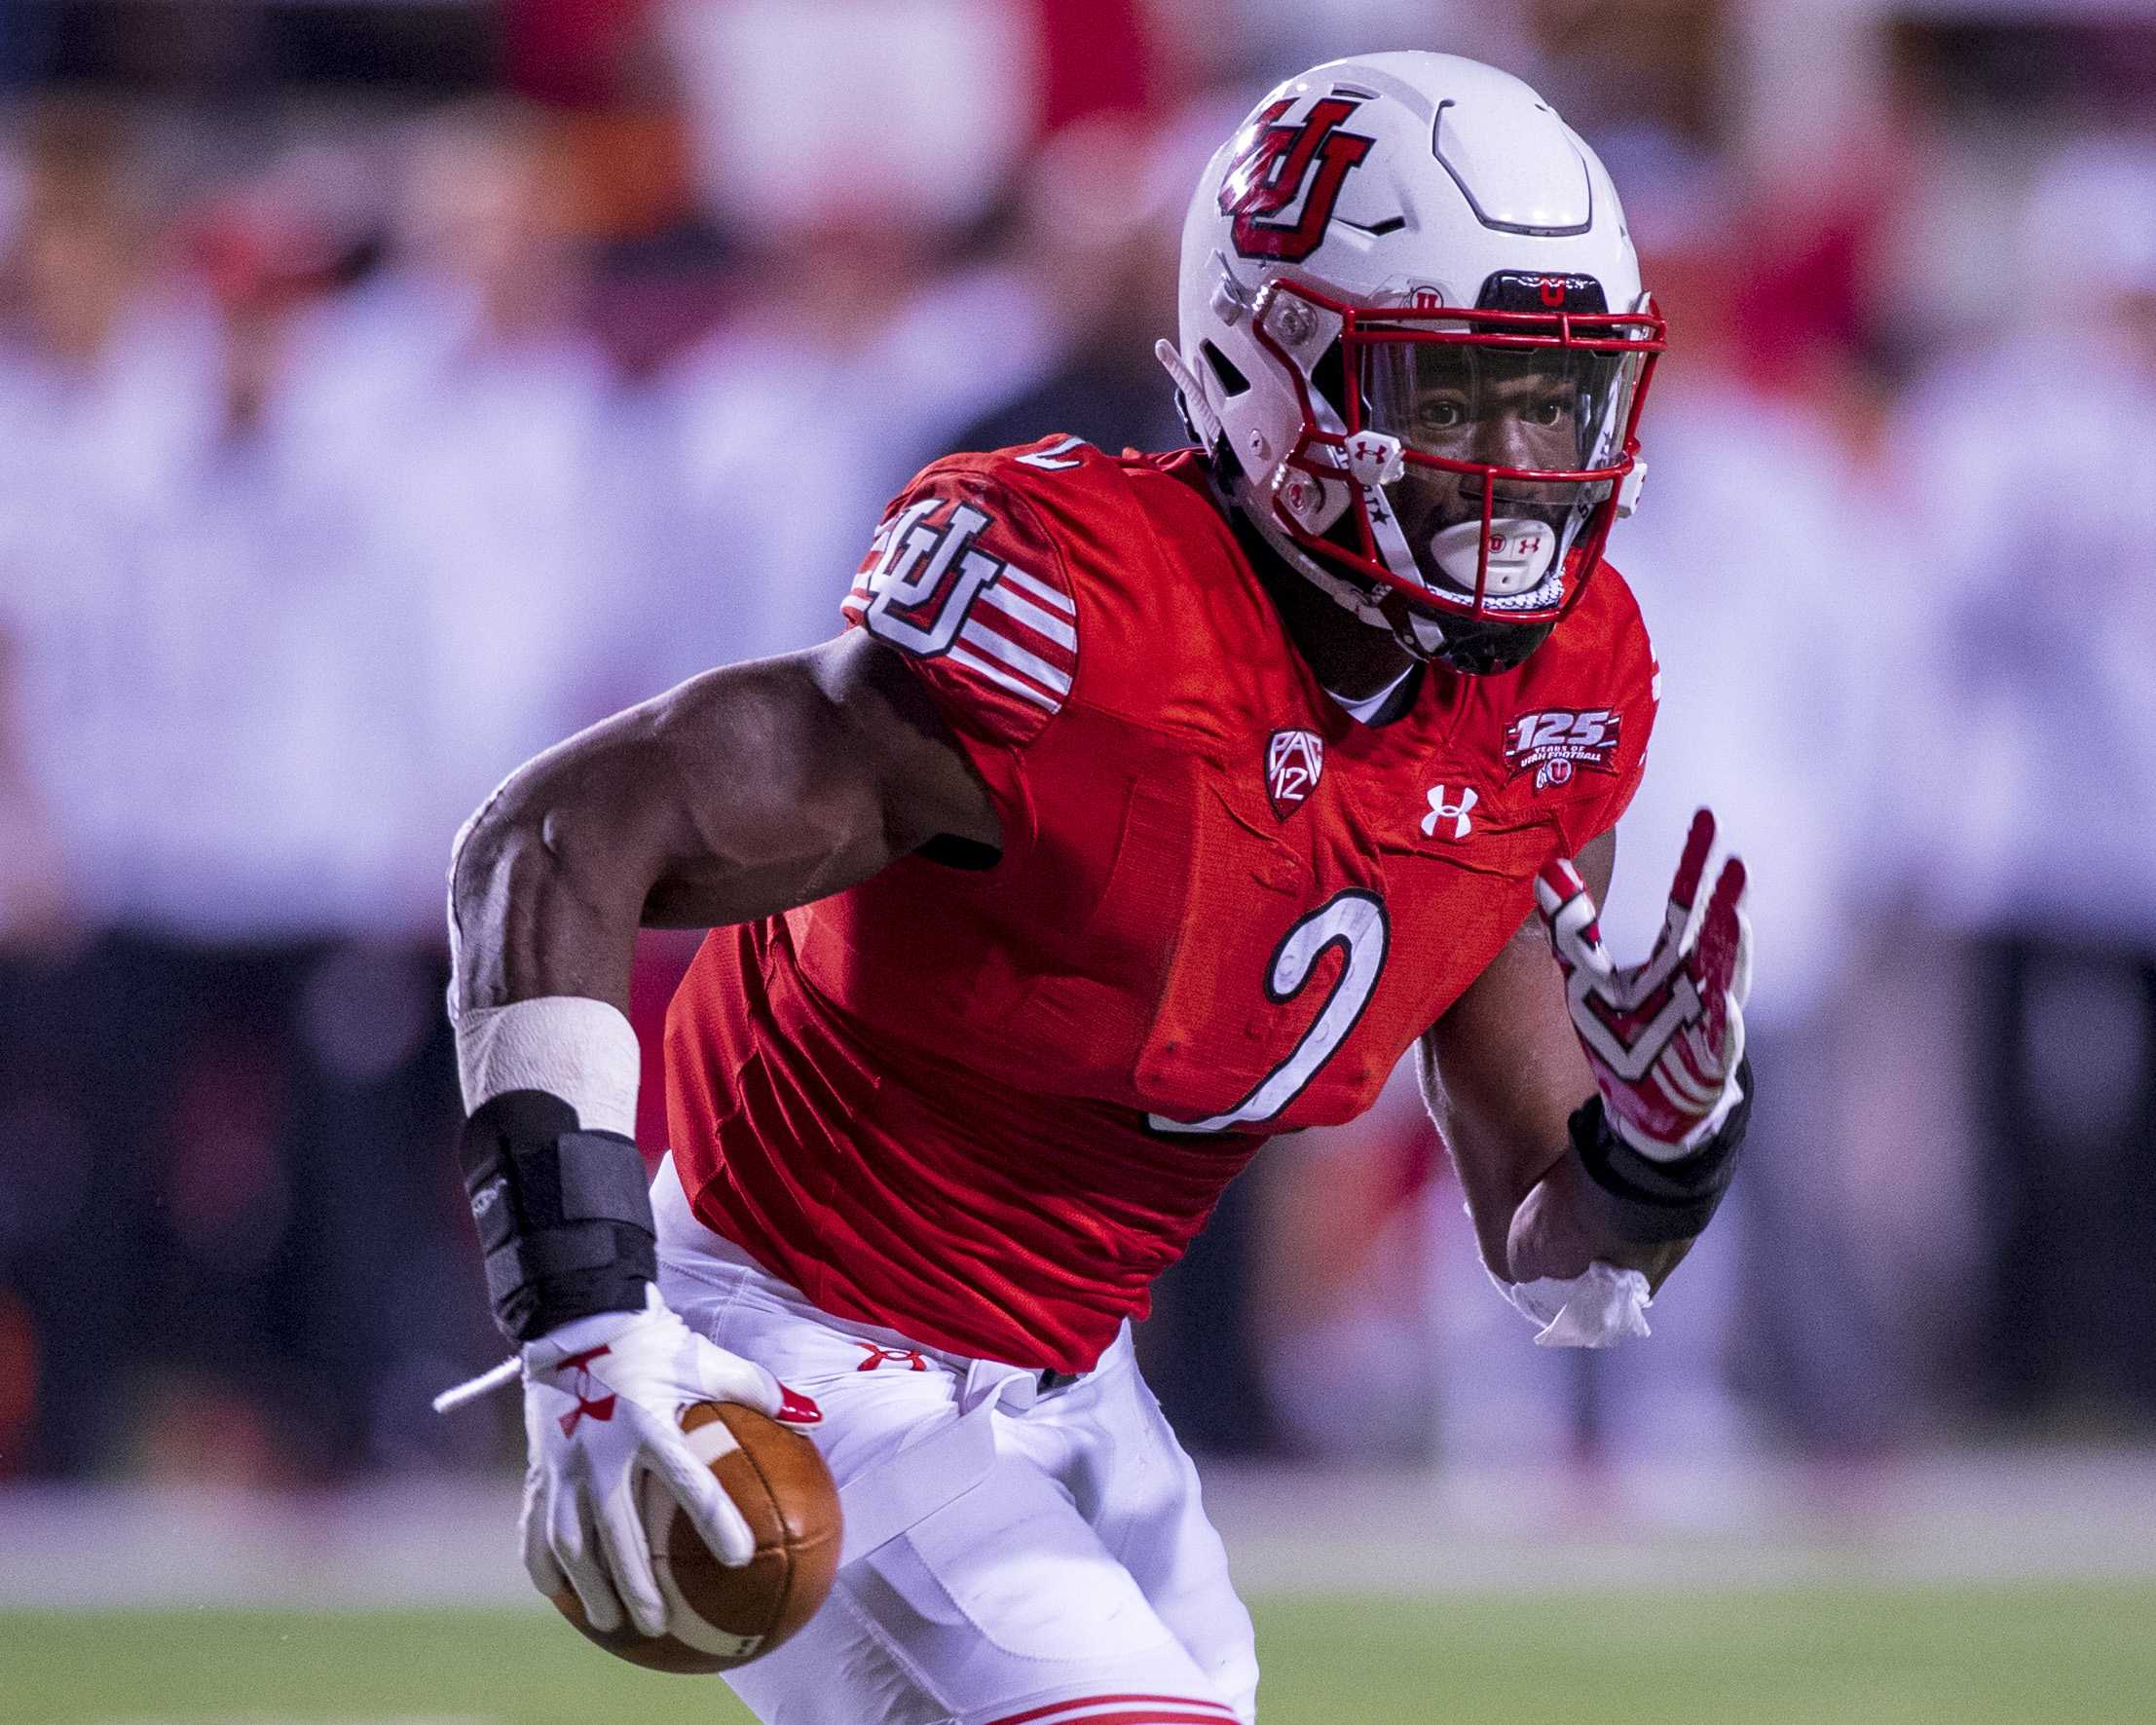 University of Utah junior running back Zack Moss (2) runs the ball downfield during an NCAA Football game vs. The University of Southern California at Rice Eccles Stadium in Salt Lake City, Utah on Saturday, Oct. 20, 2018. (Photo by Kiffer Creveling | The Daily Utah Chronicle)